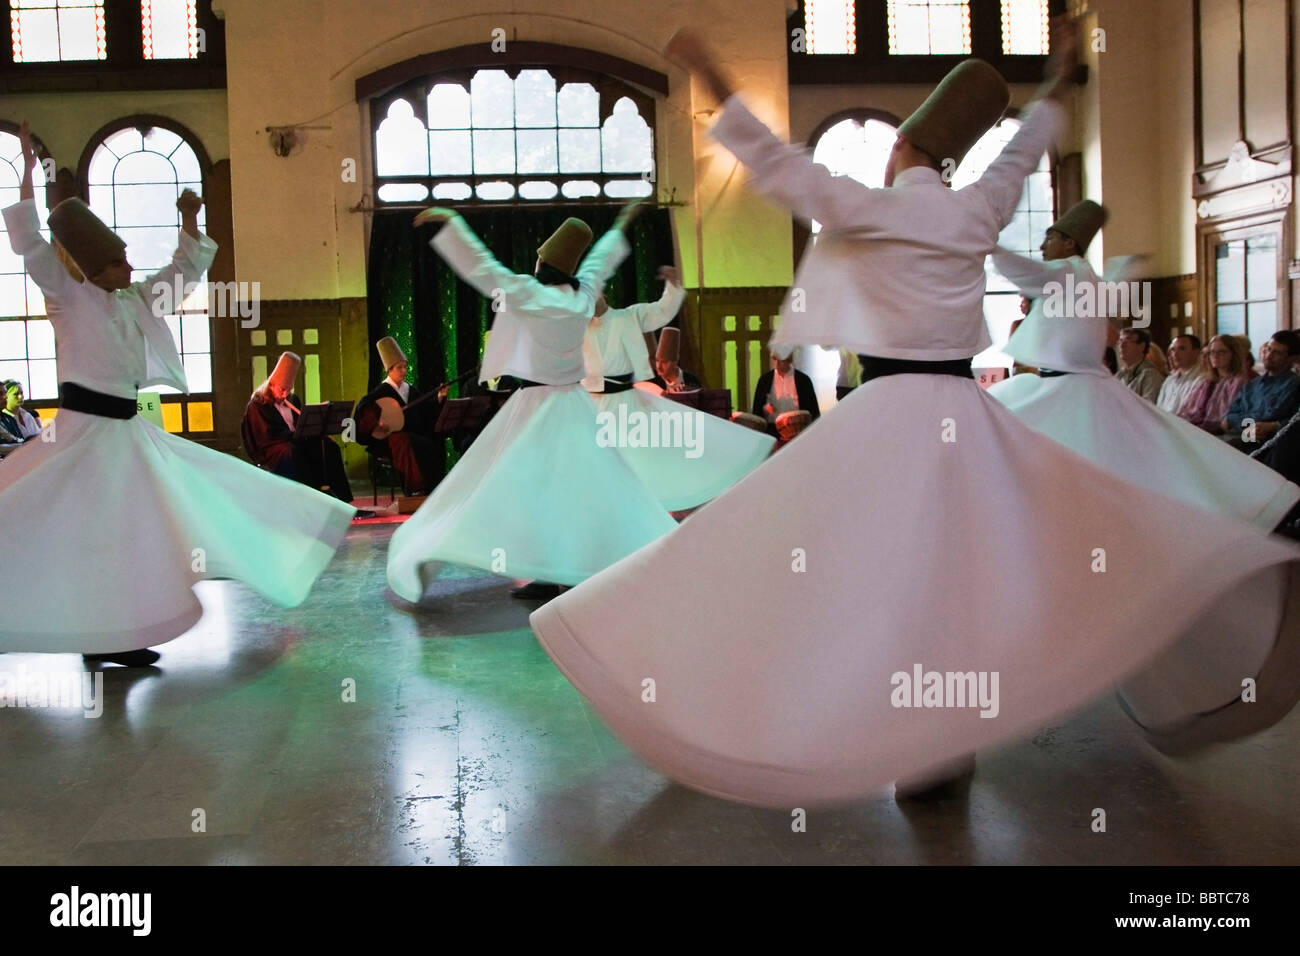 Mevlana Whirling Dervishes perform Sema, Sirkeci Central Train Station hall, Istanbul, Turkey, Europe - Stock Image